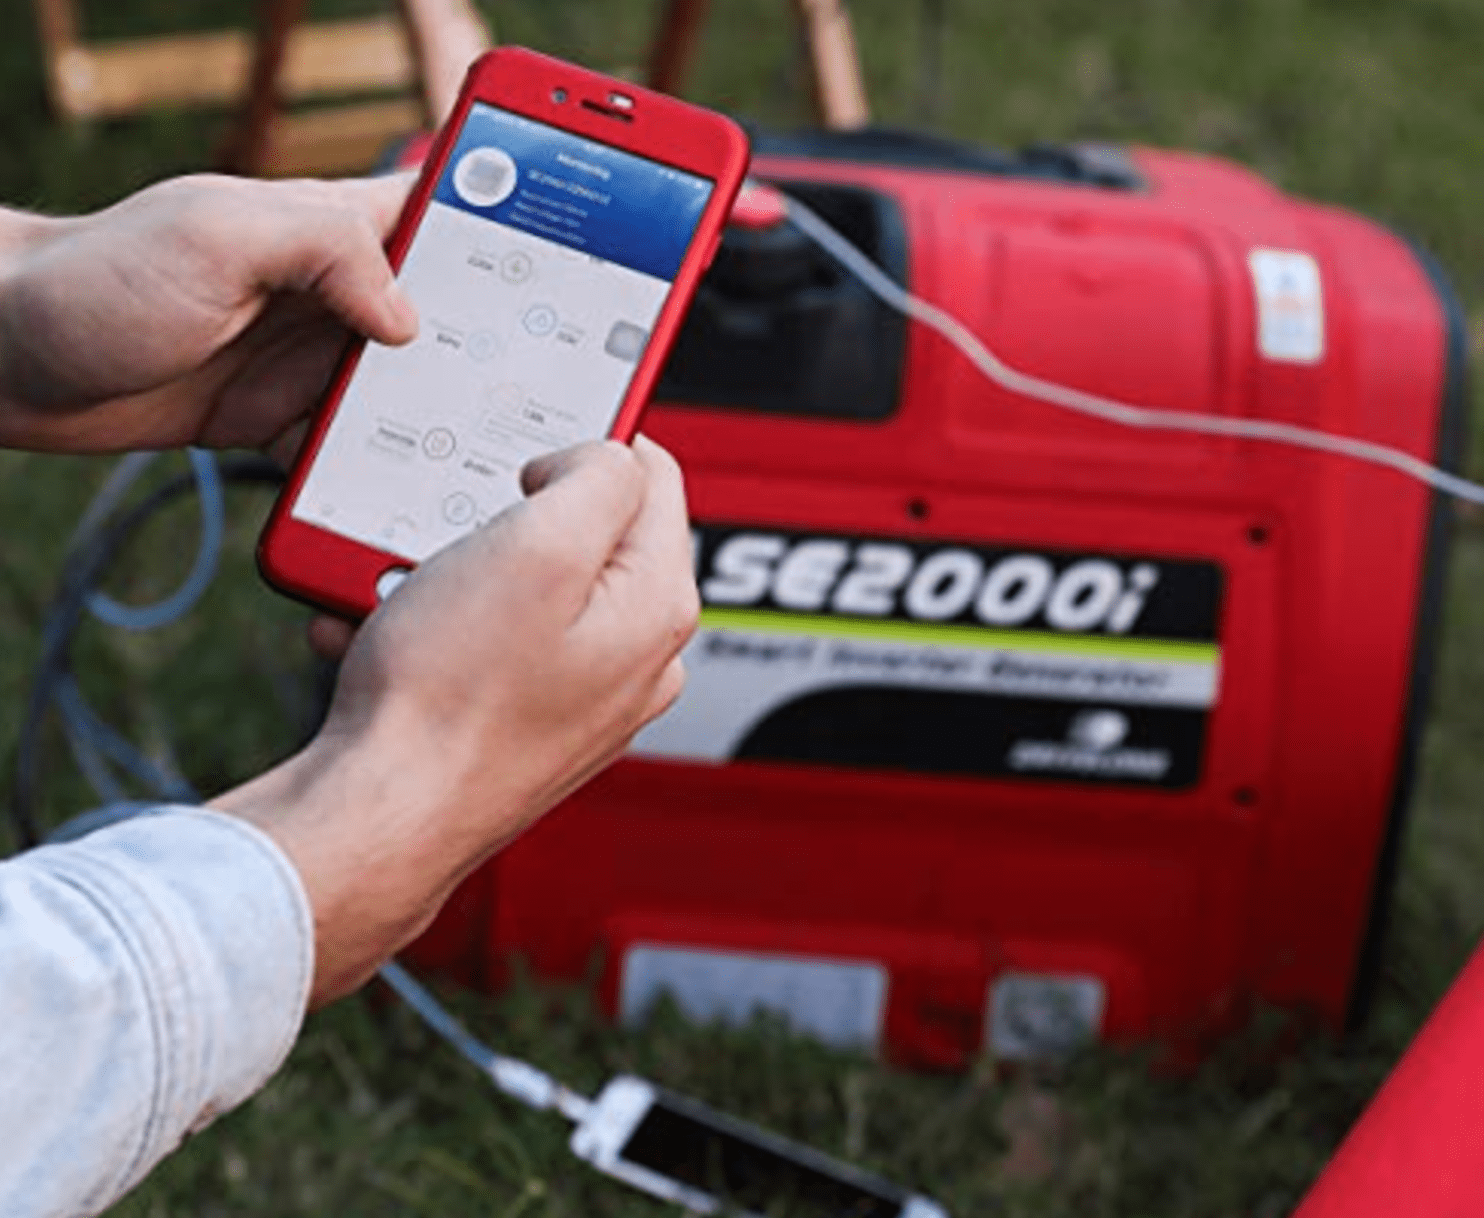 How long should you keep a Power Generator on For?